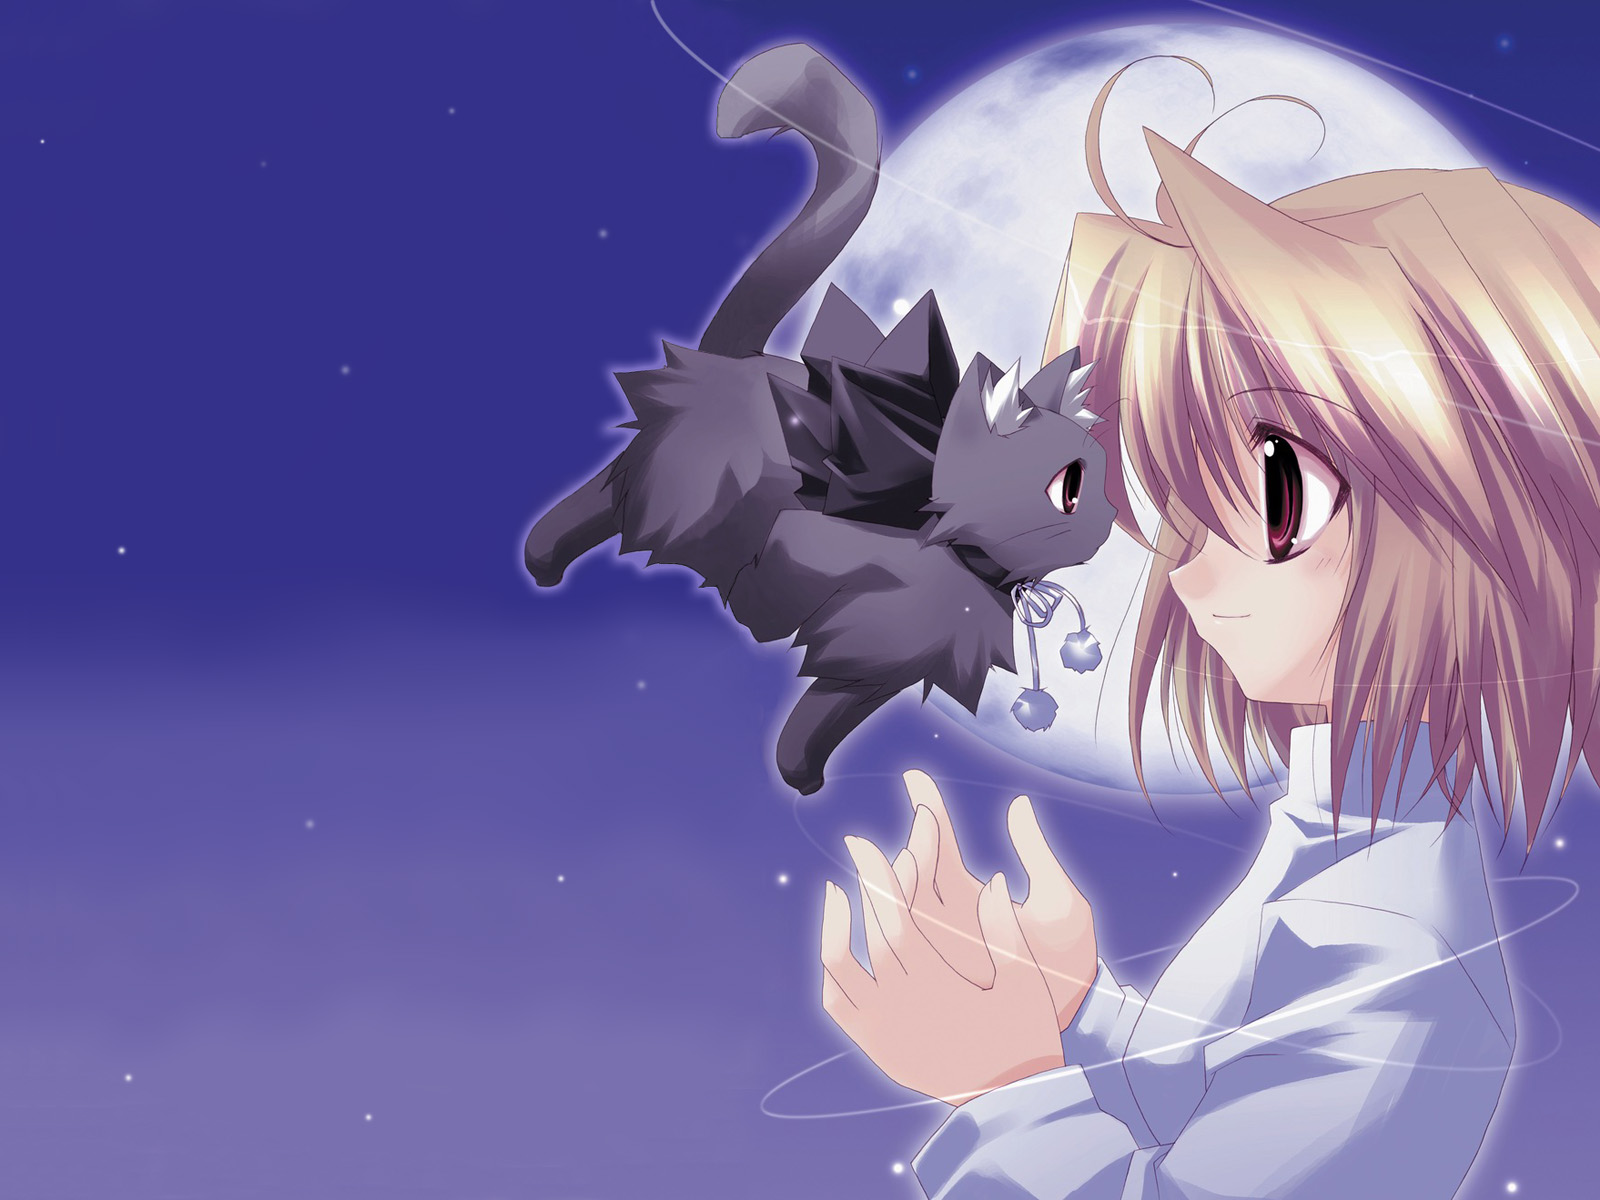 Anime Wallpapers Cute anime wallpaper 1600x1200